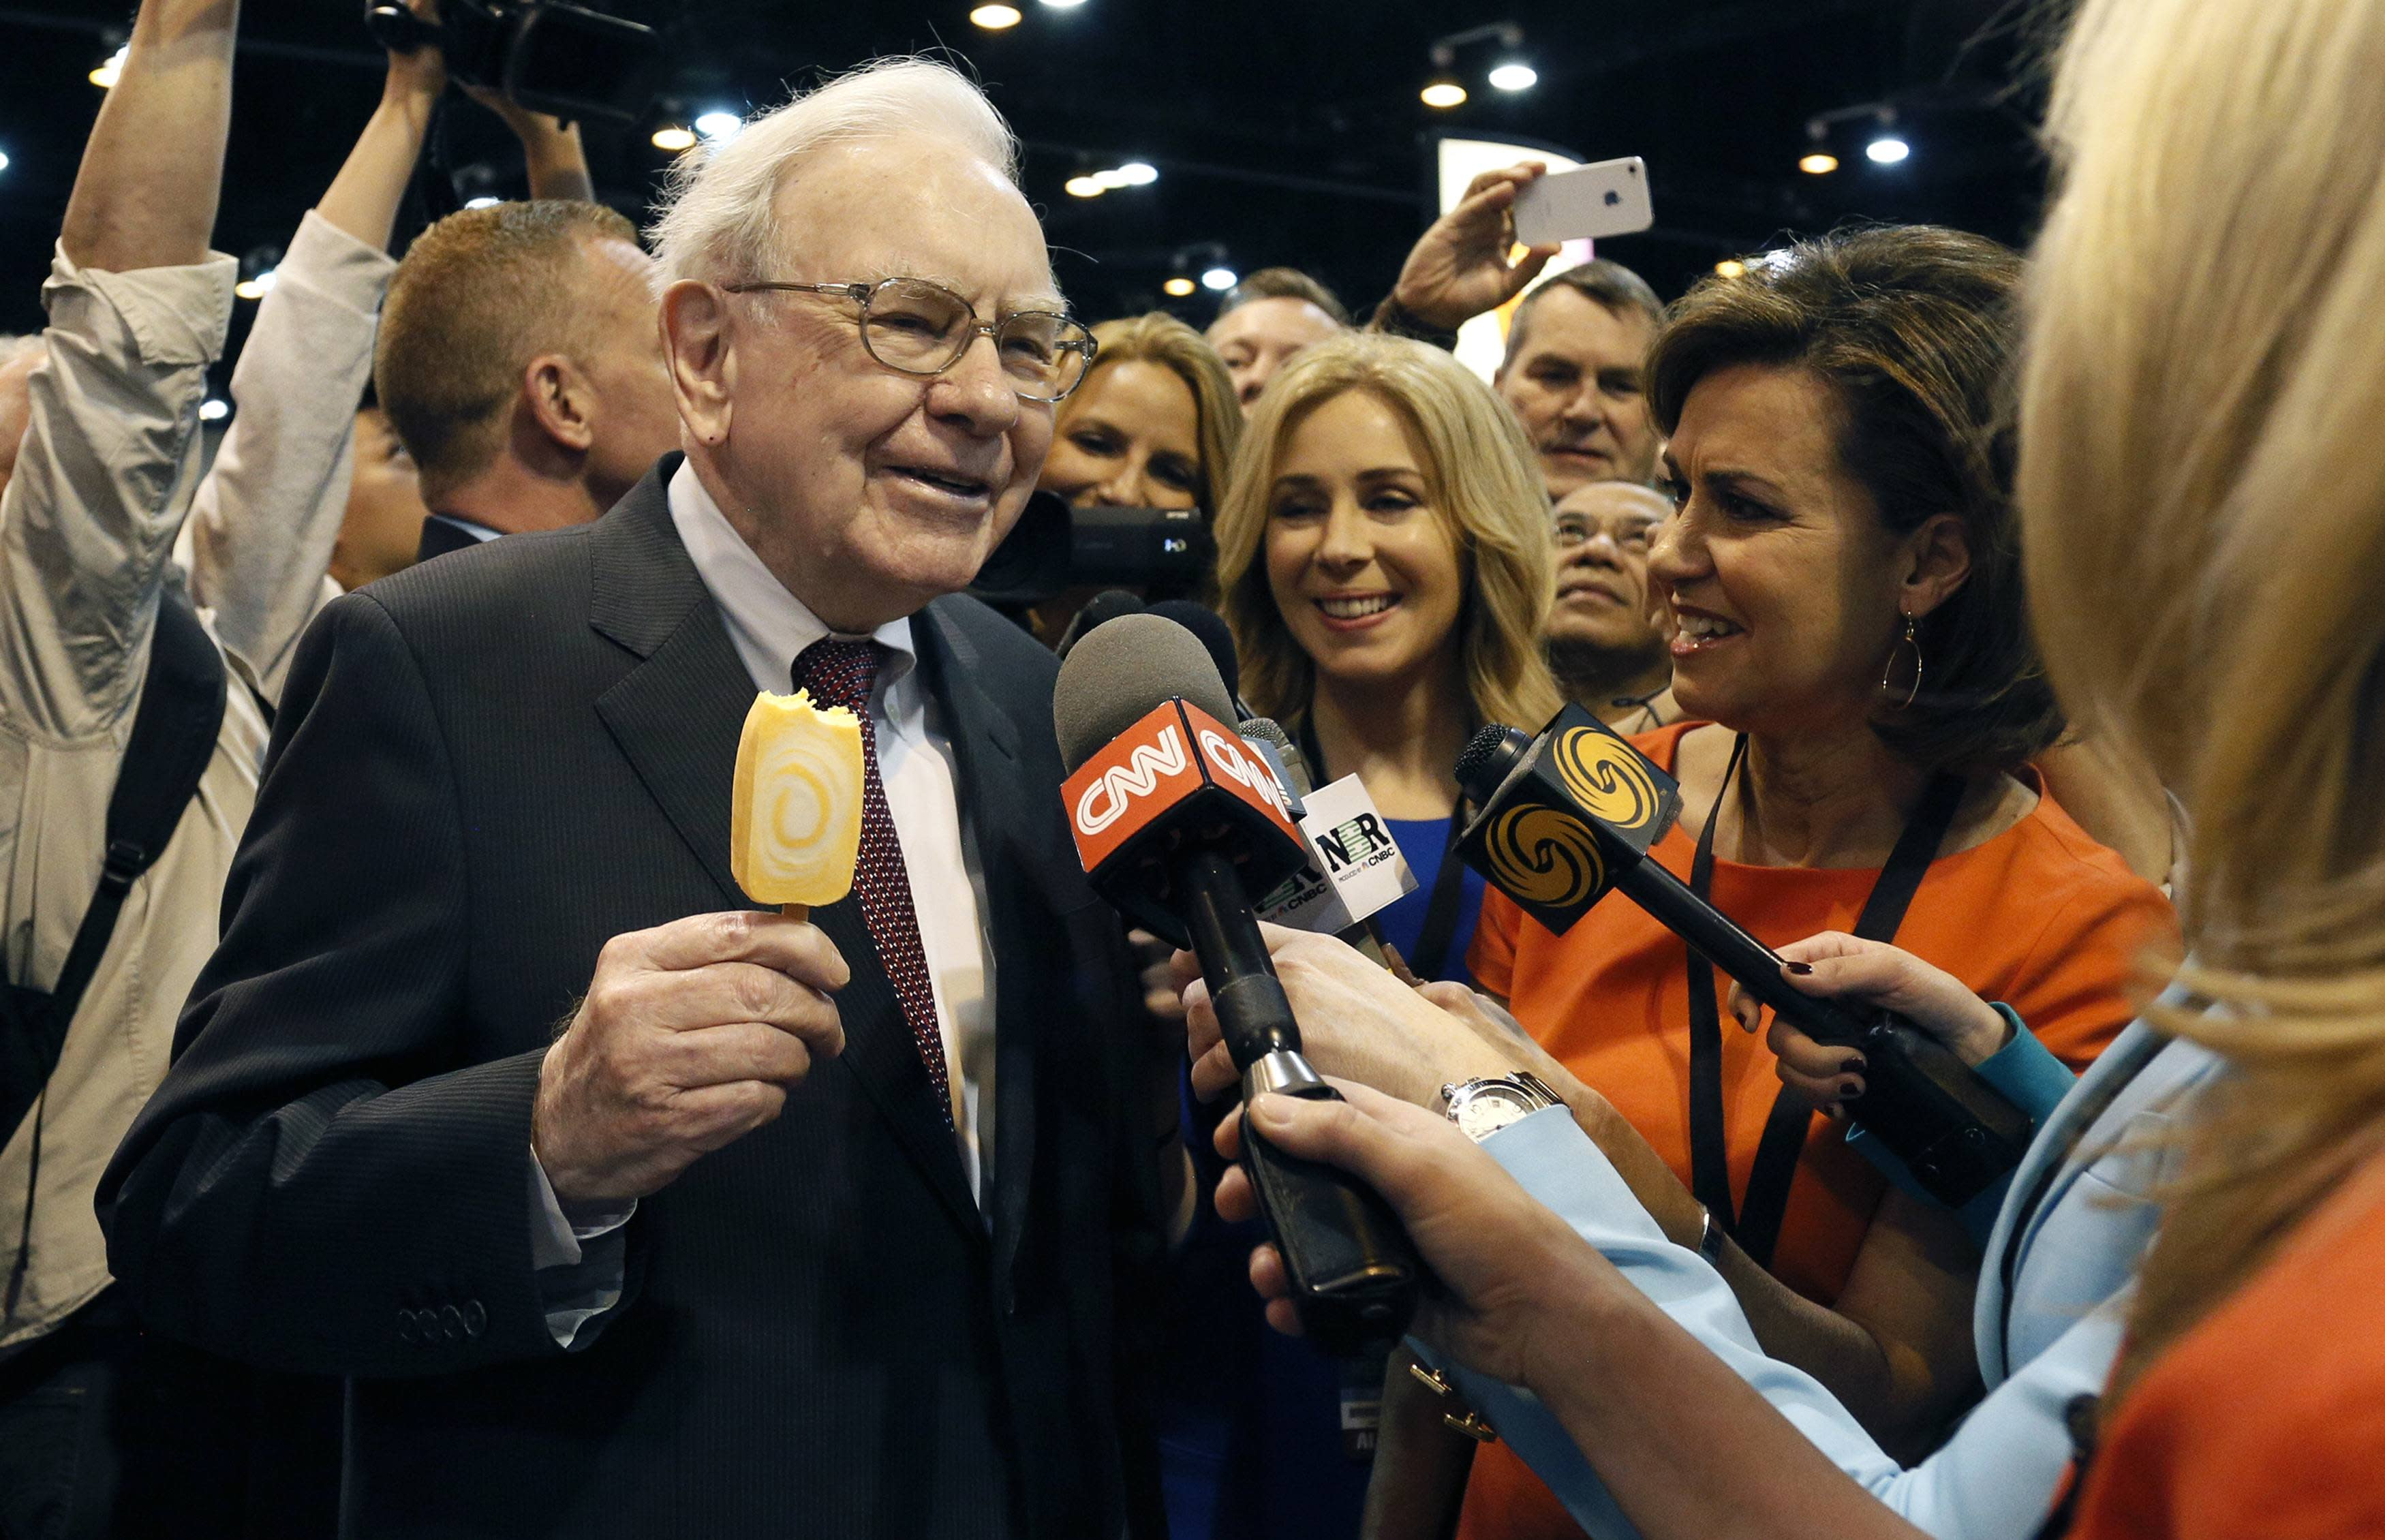 Berkshire Hathaway CEO Warren Buffett talks to reporters while holding an ice cream at a trade show during the company's annual meeting in Omaha, Nebraska May 3, 2014. (Reuters/Rick Wilking)